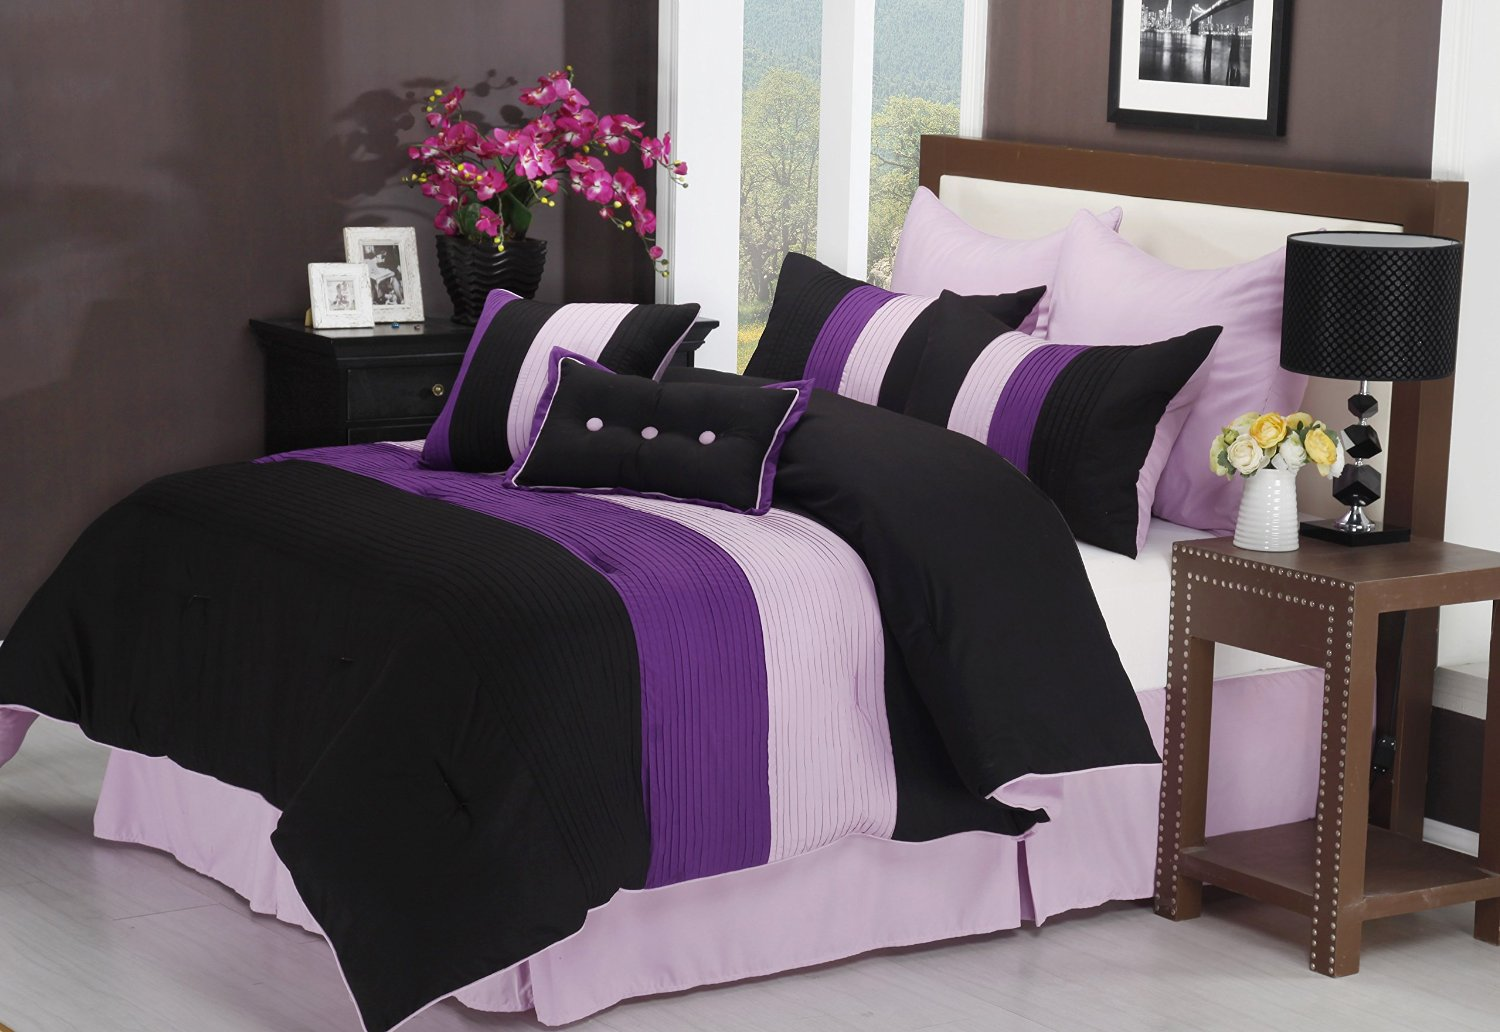 Black and white and purple bedrooms - 8 Pc Contemporary Black White And Purple Bedding Comforter Set